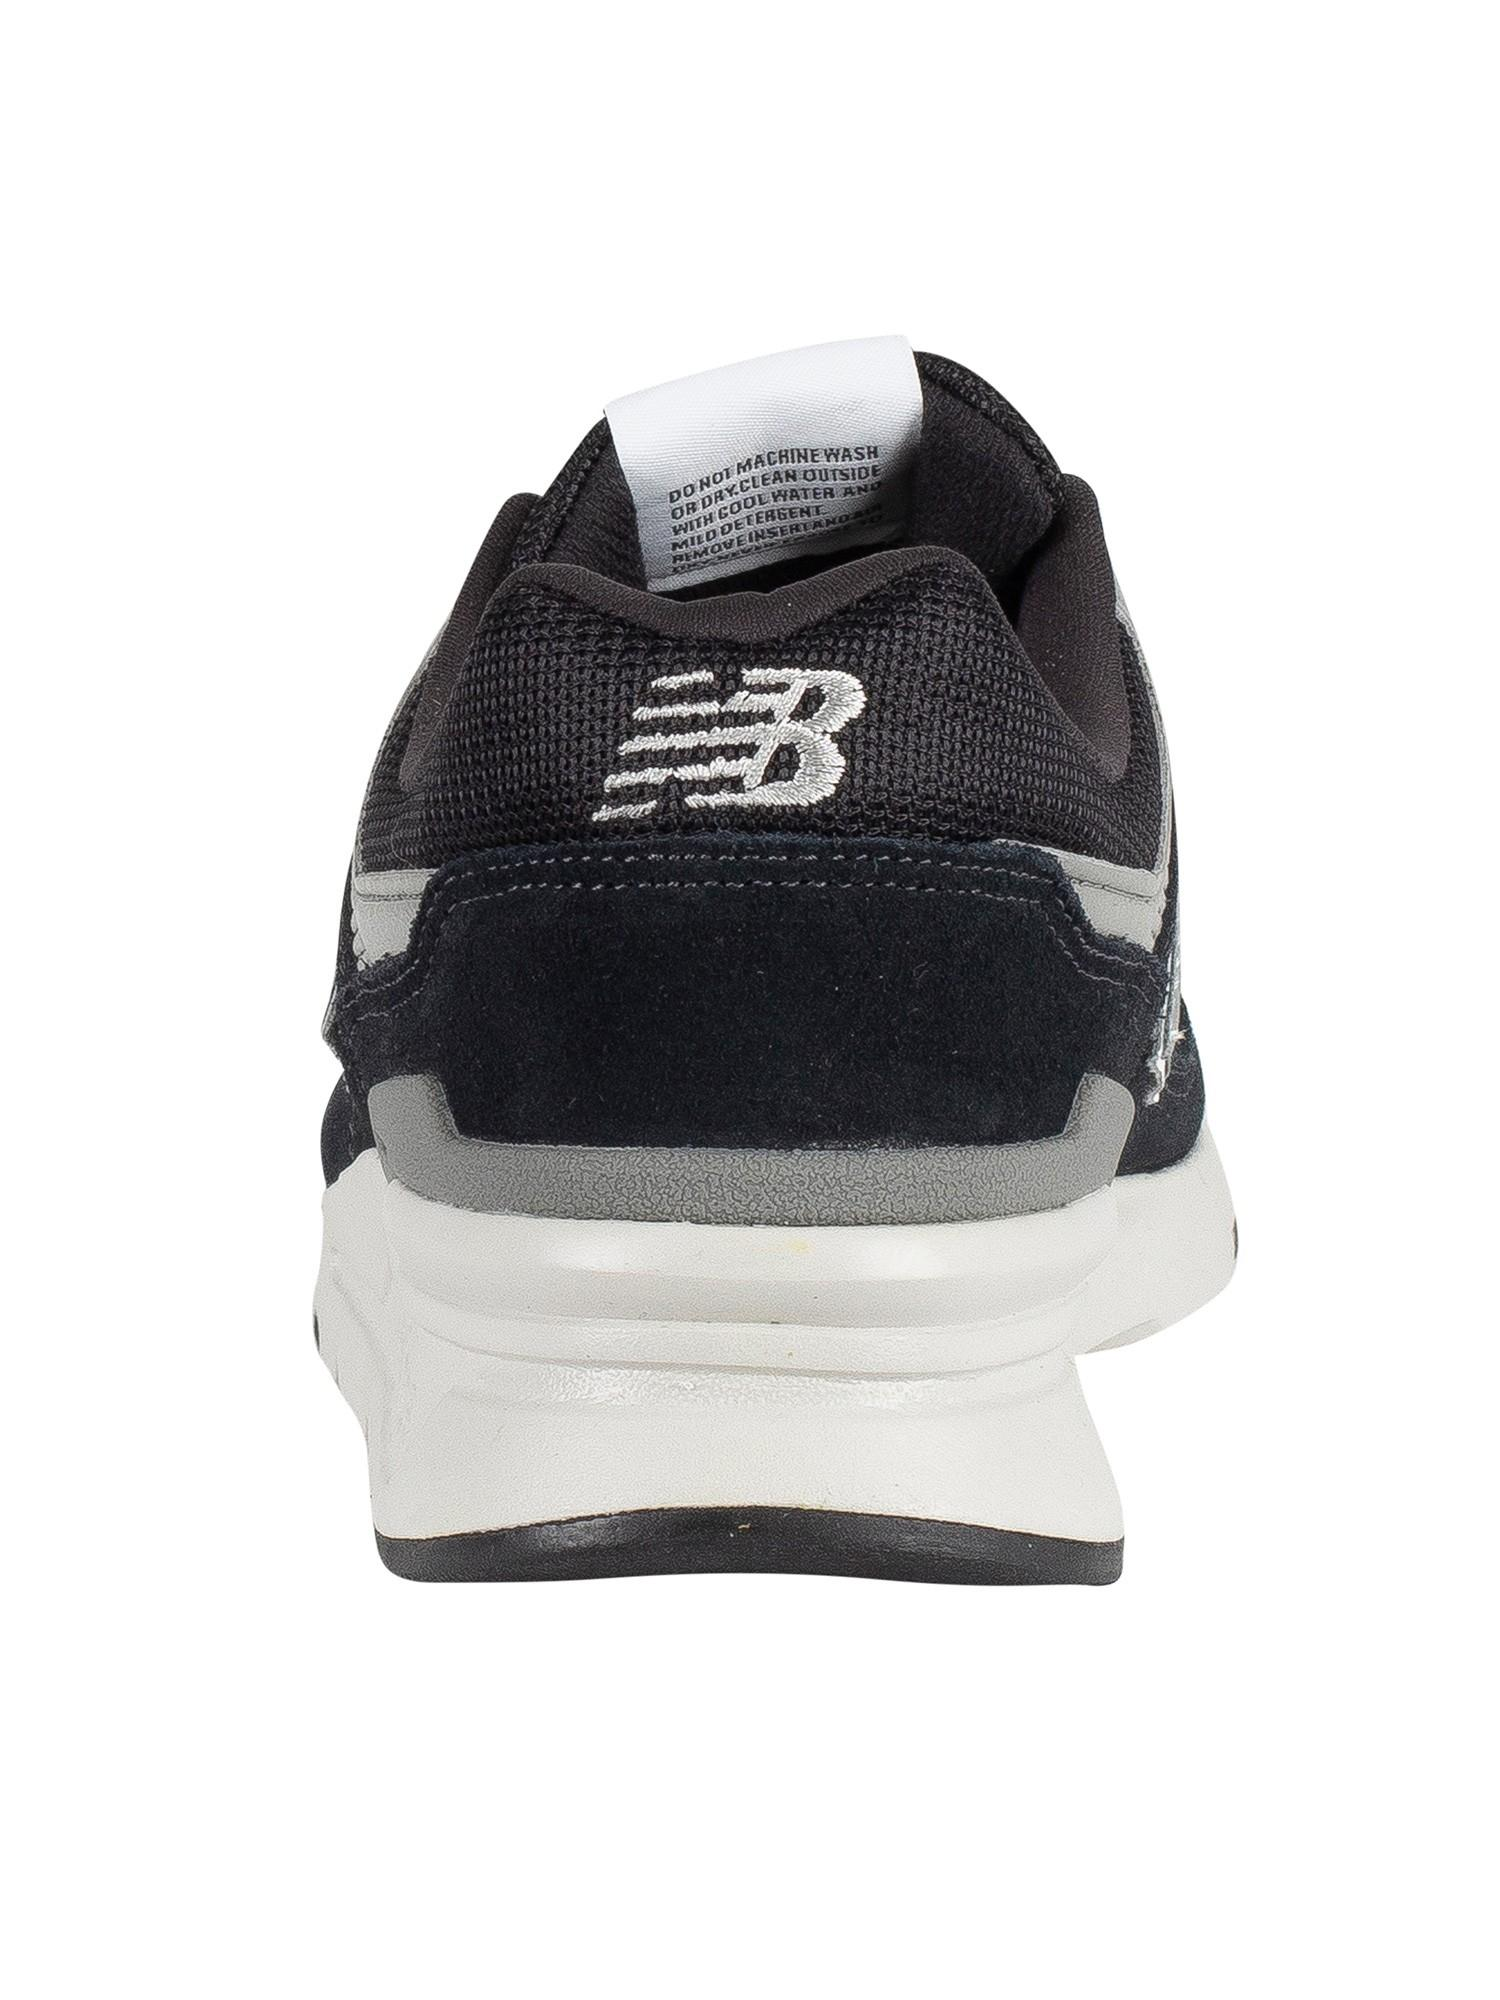 New Balance 977 Suede Trainers in Black/Silver/Grey (Black) for ...